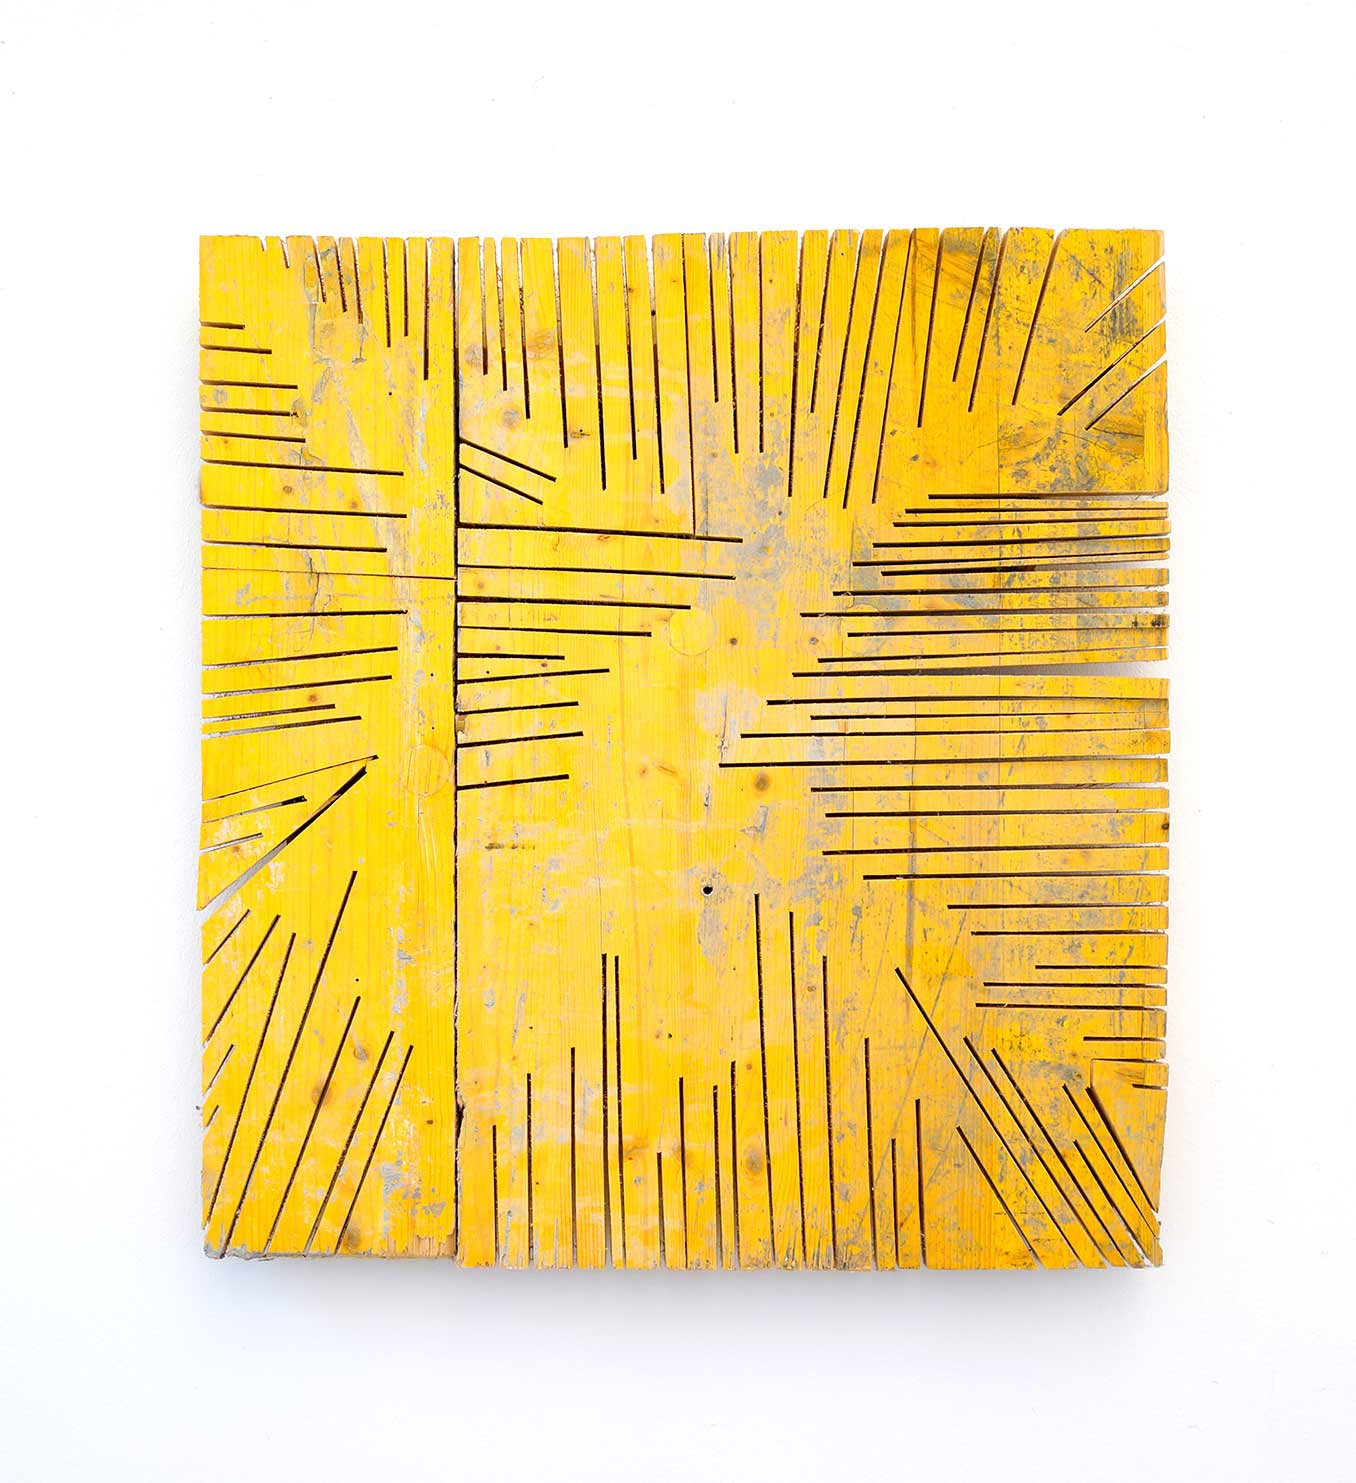 yellow wood, object, artwork, woodcut, conceptual, flatland, landscape, ernst koslitsch